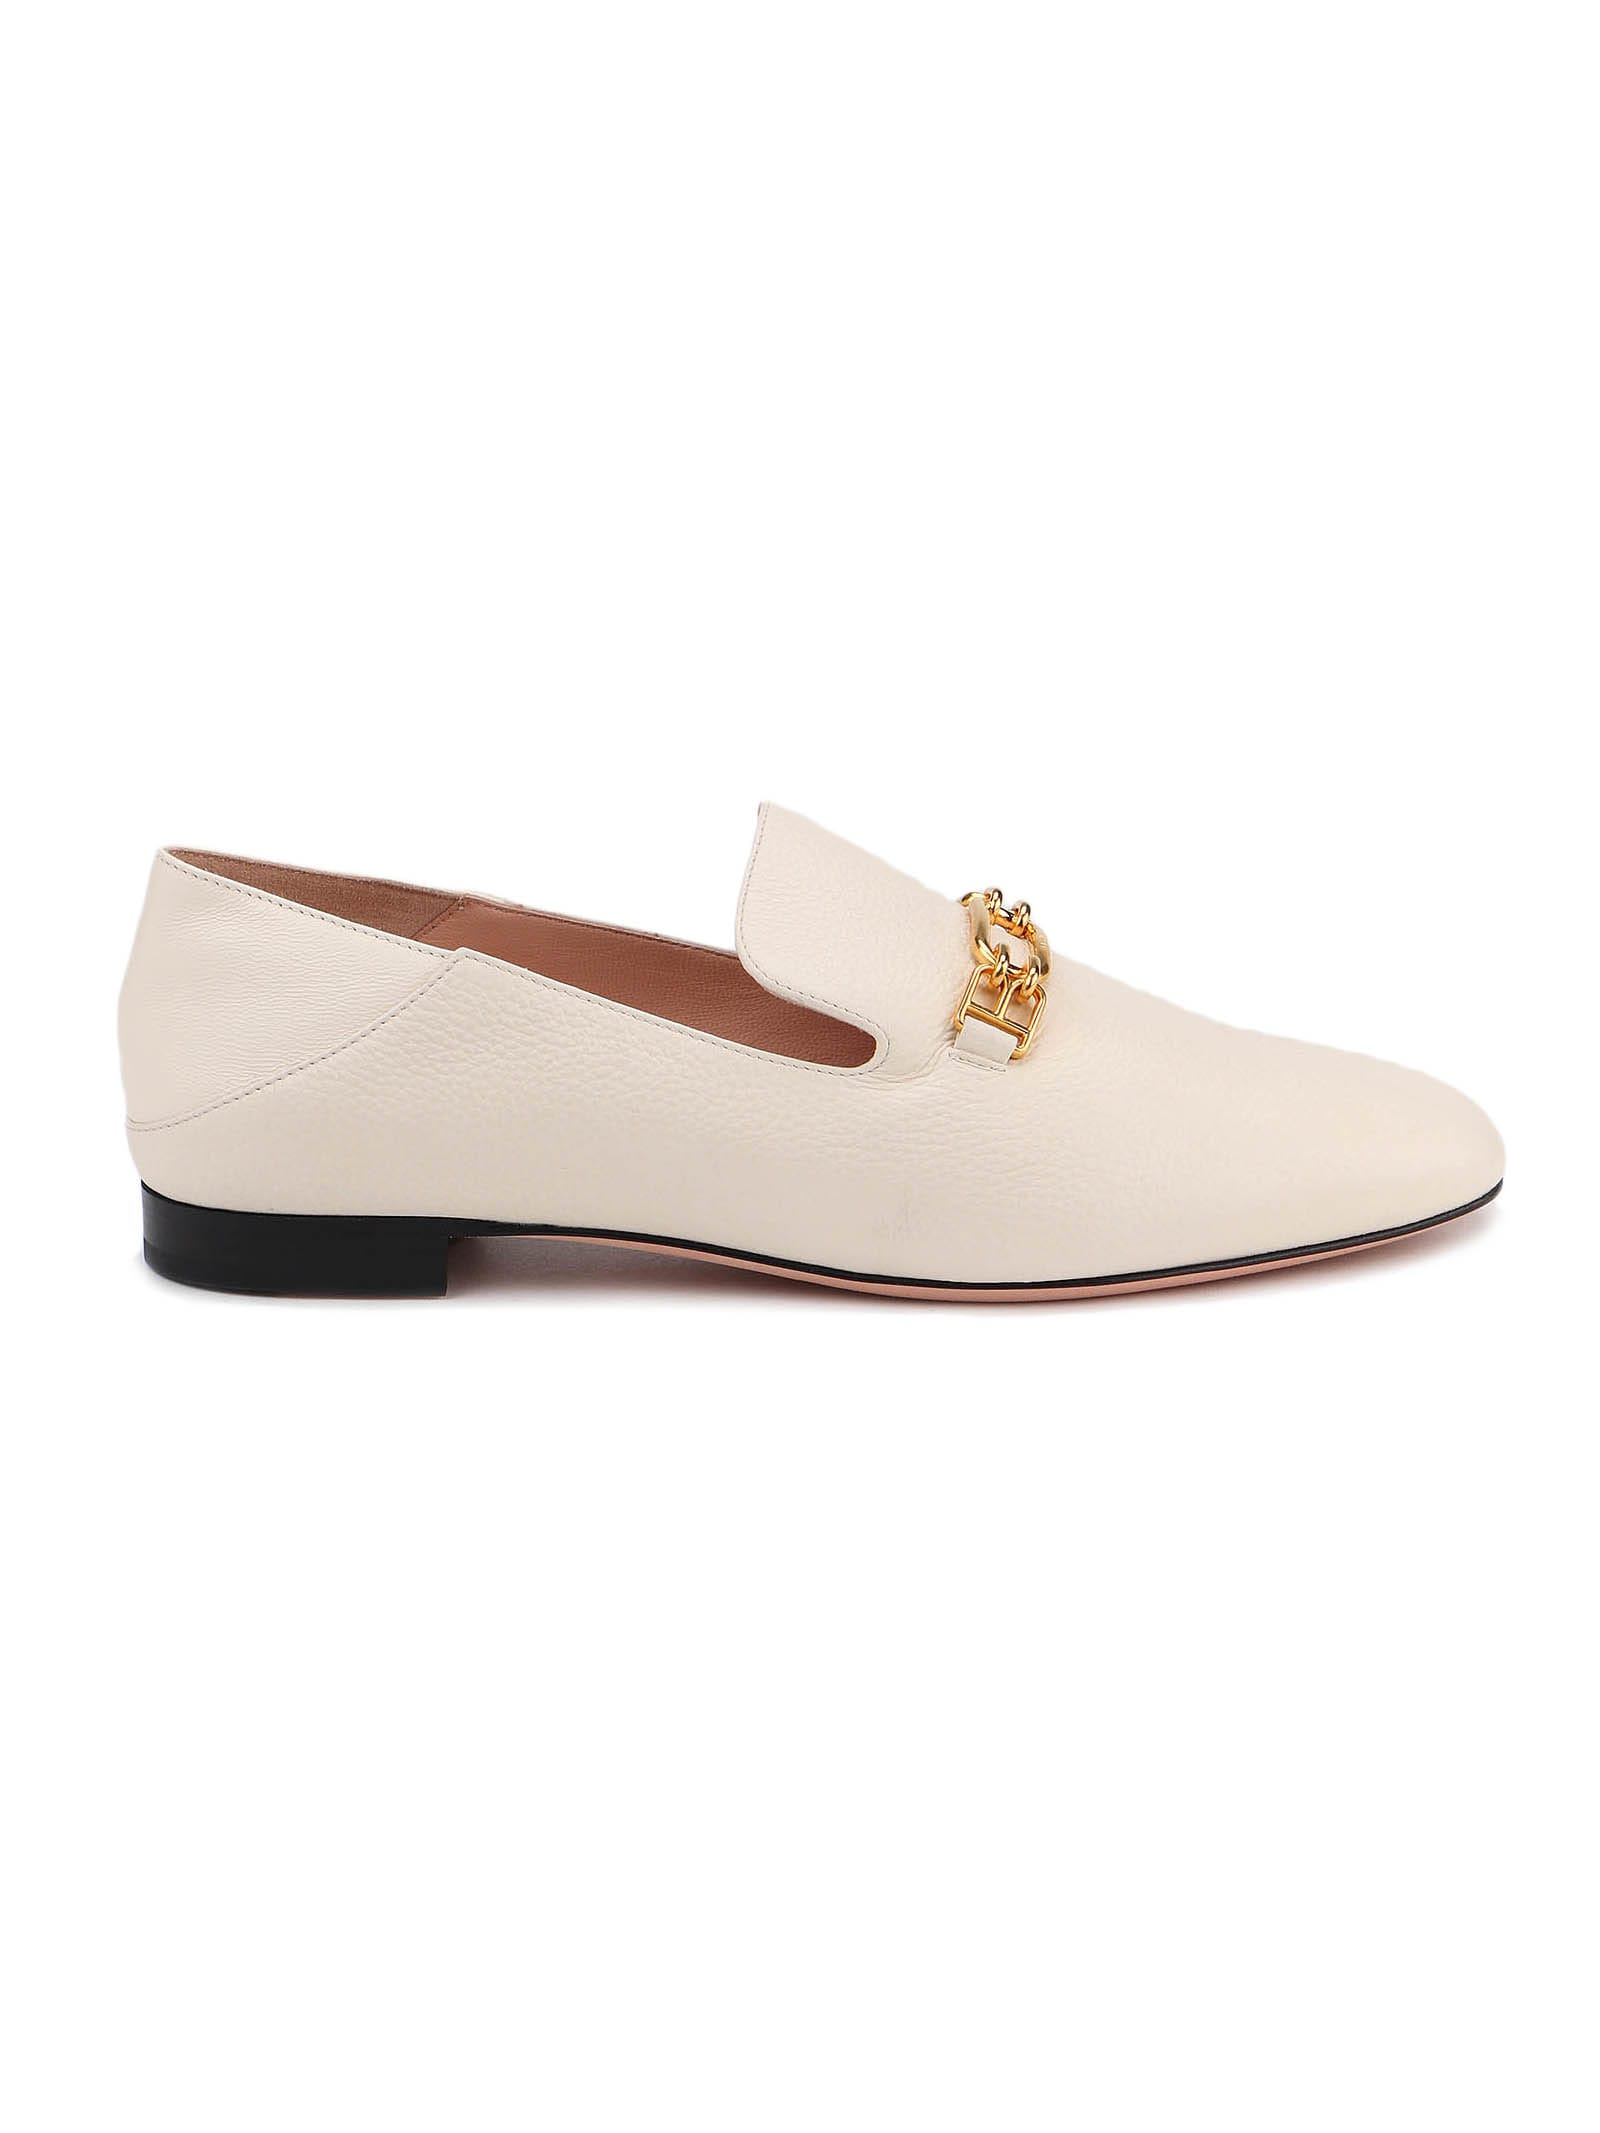 Bally DARCIE FLAT/08 SLIPPER